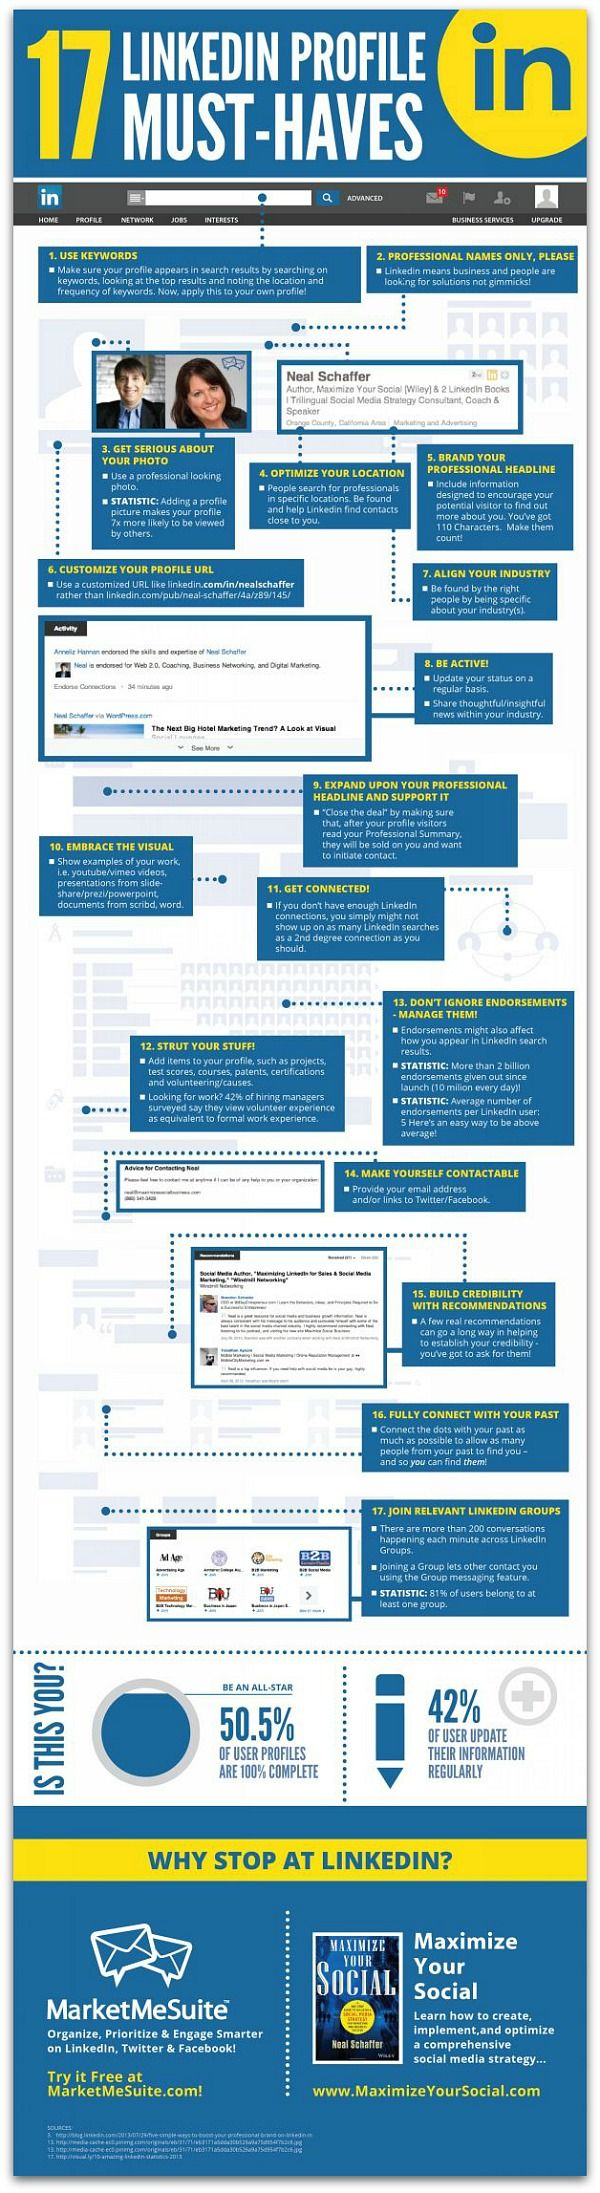 Here are some tips to be sure your LinkedIn profile is